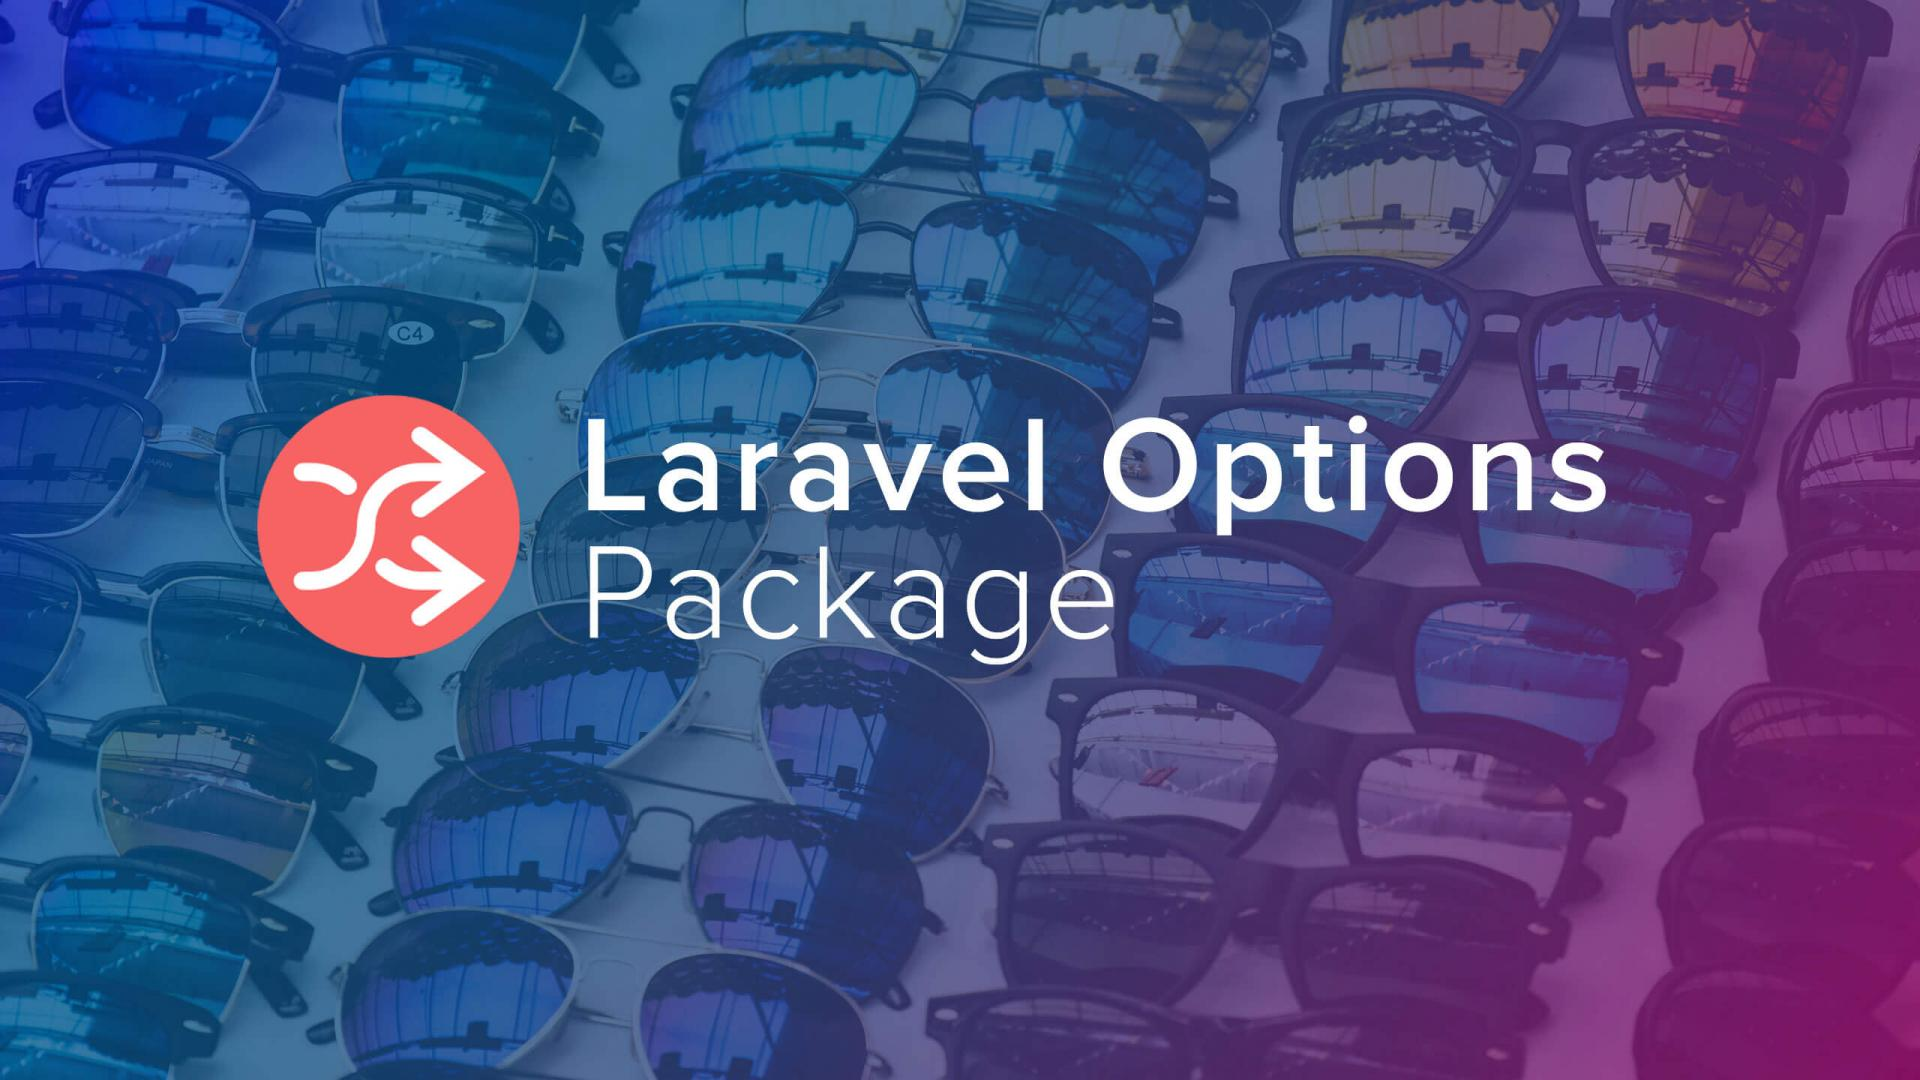 Laravel Options Package